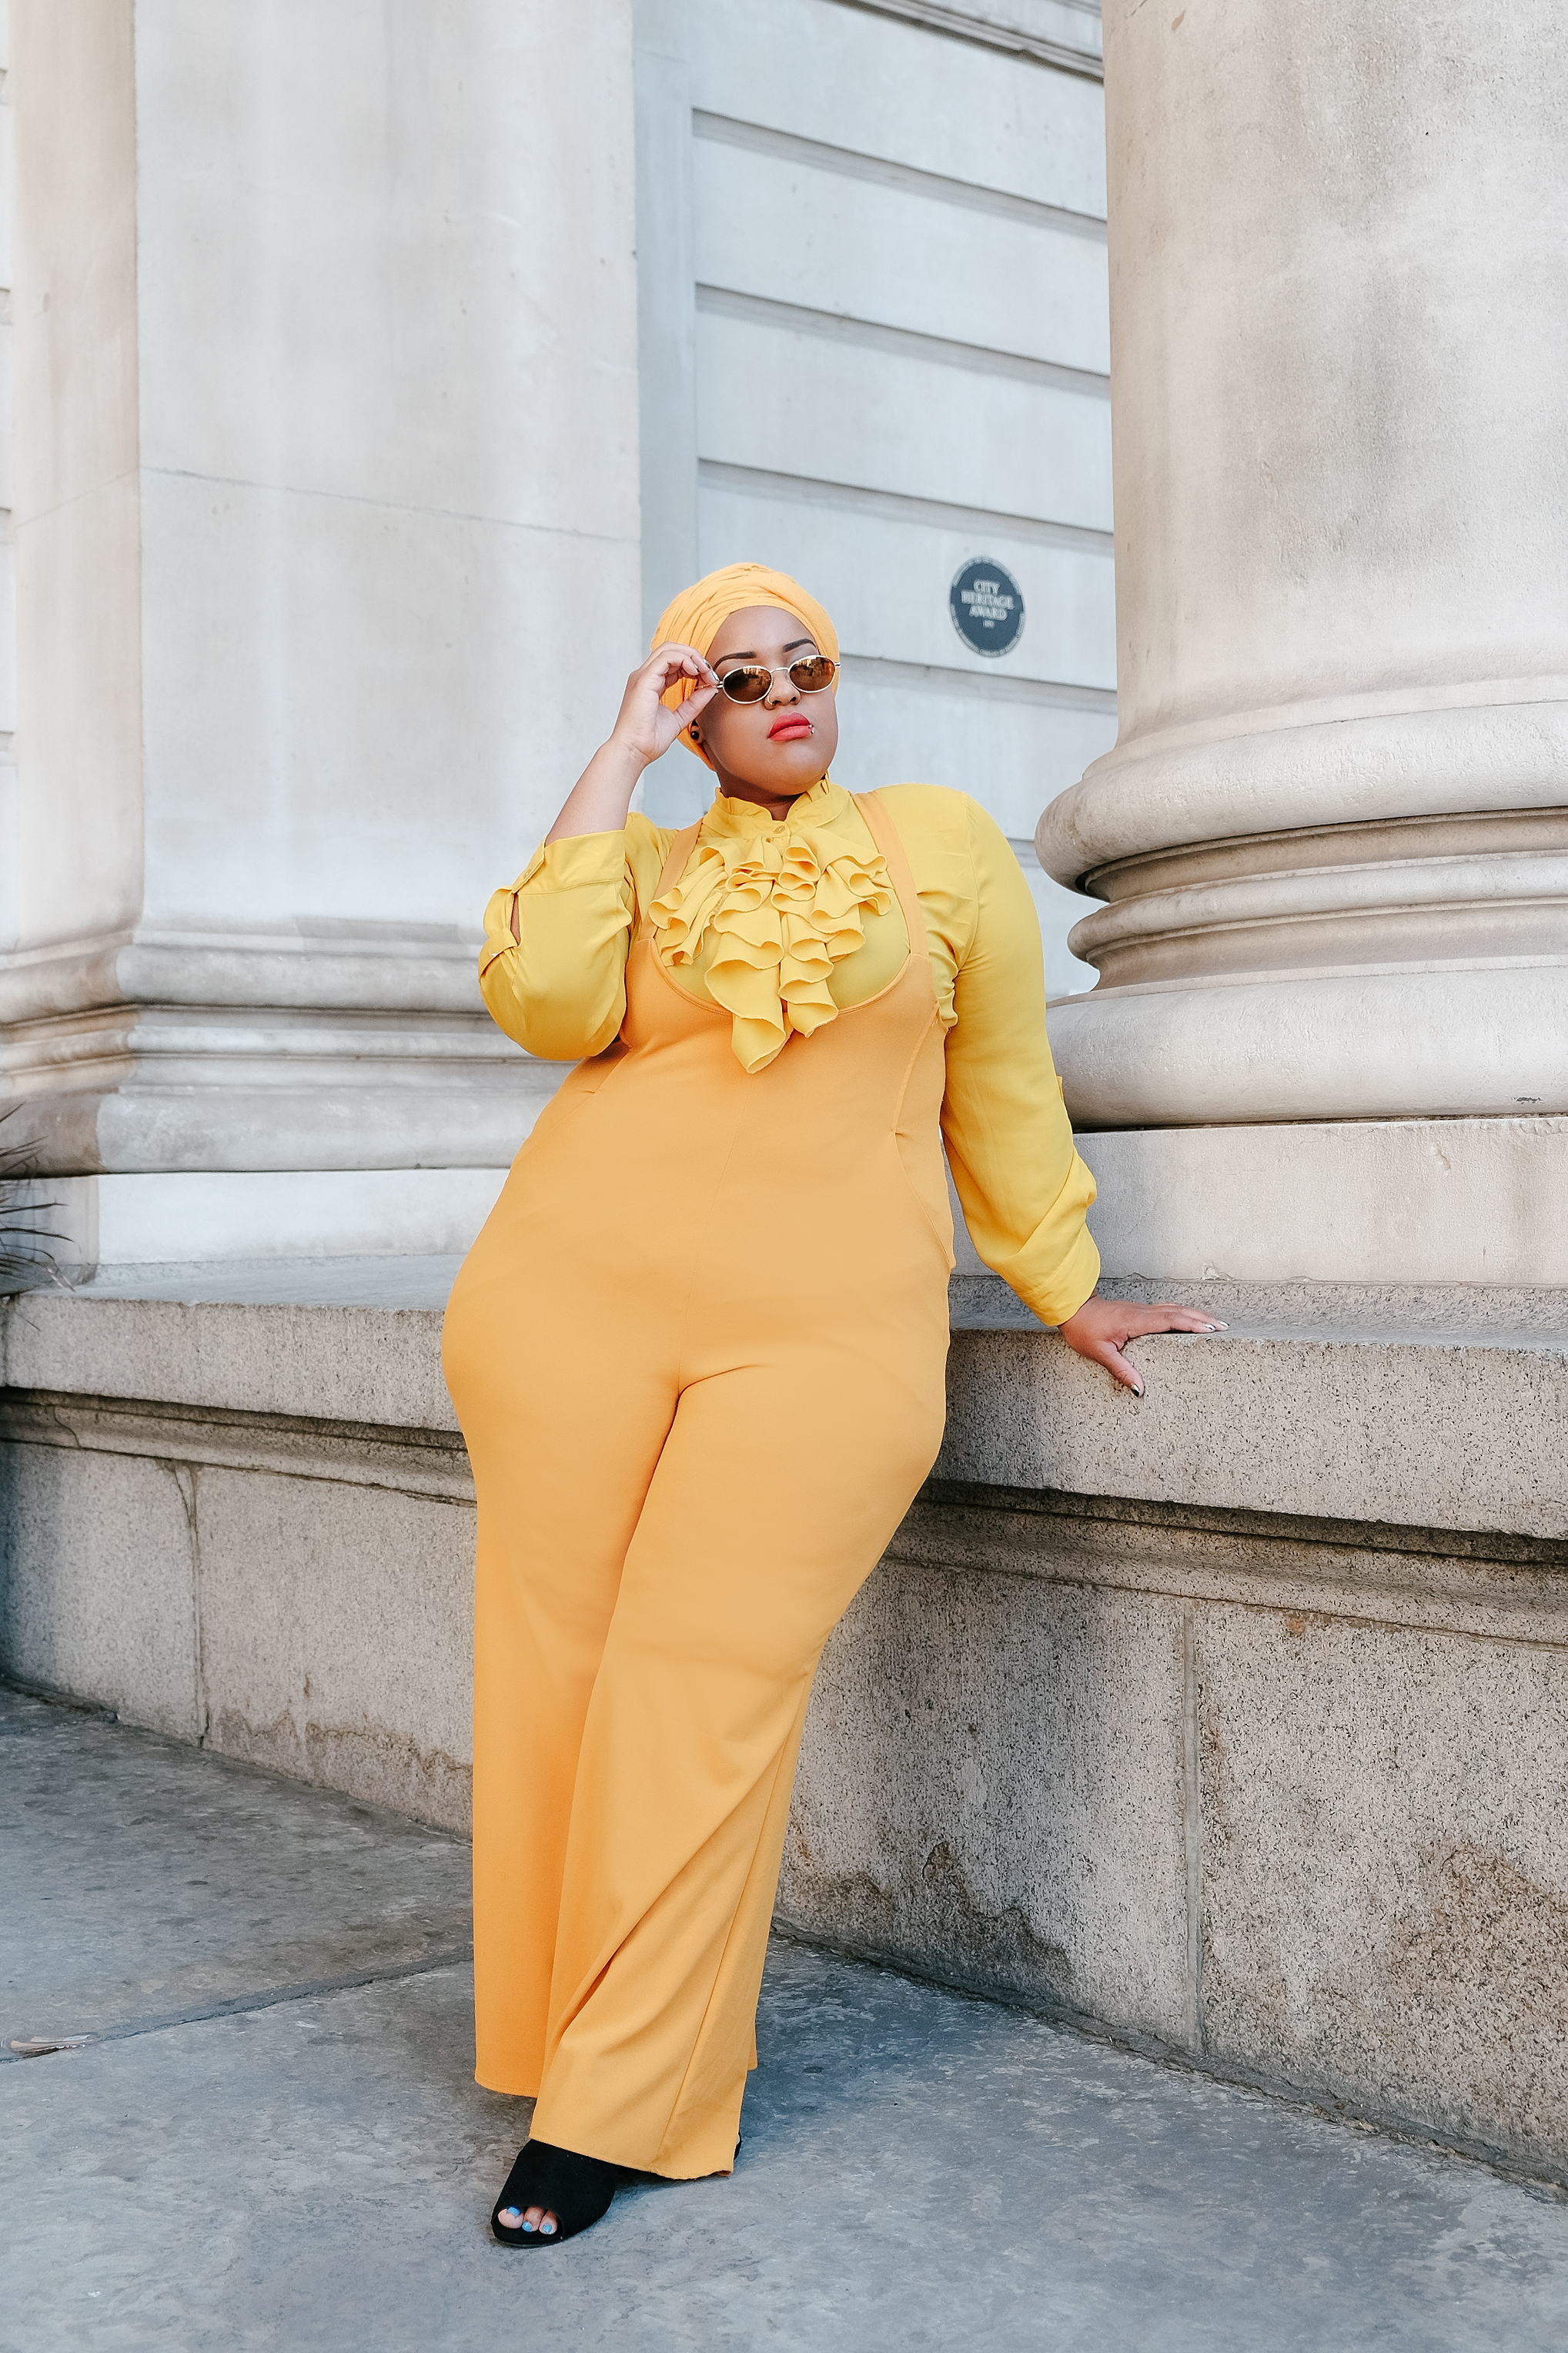 Leah-Vernon-Plus-Size-Body-Positive-Model-Detroit-Muslim-Girl-Black-Instagram-Bloggers-2.JPG